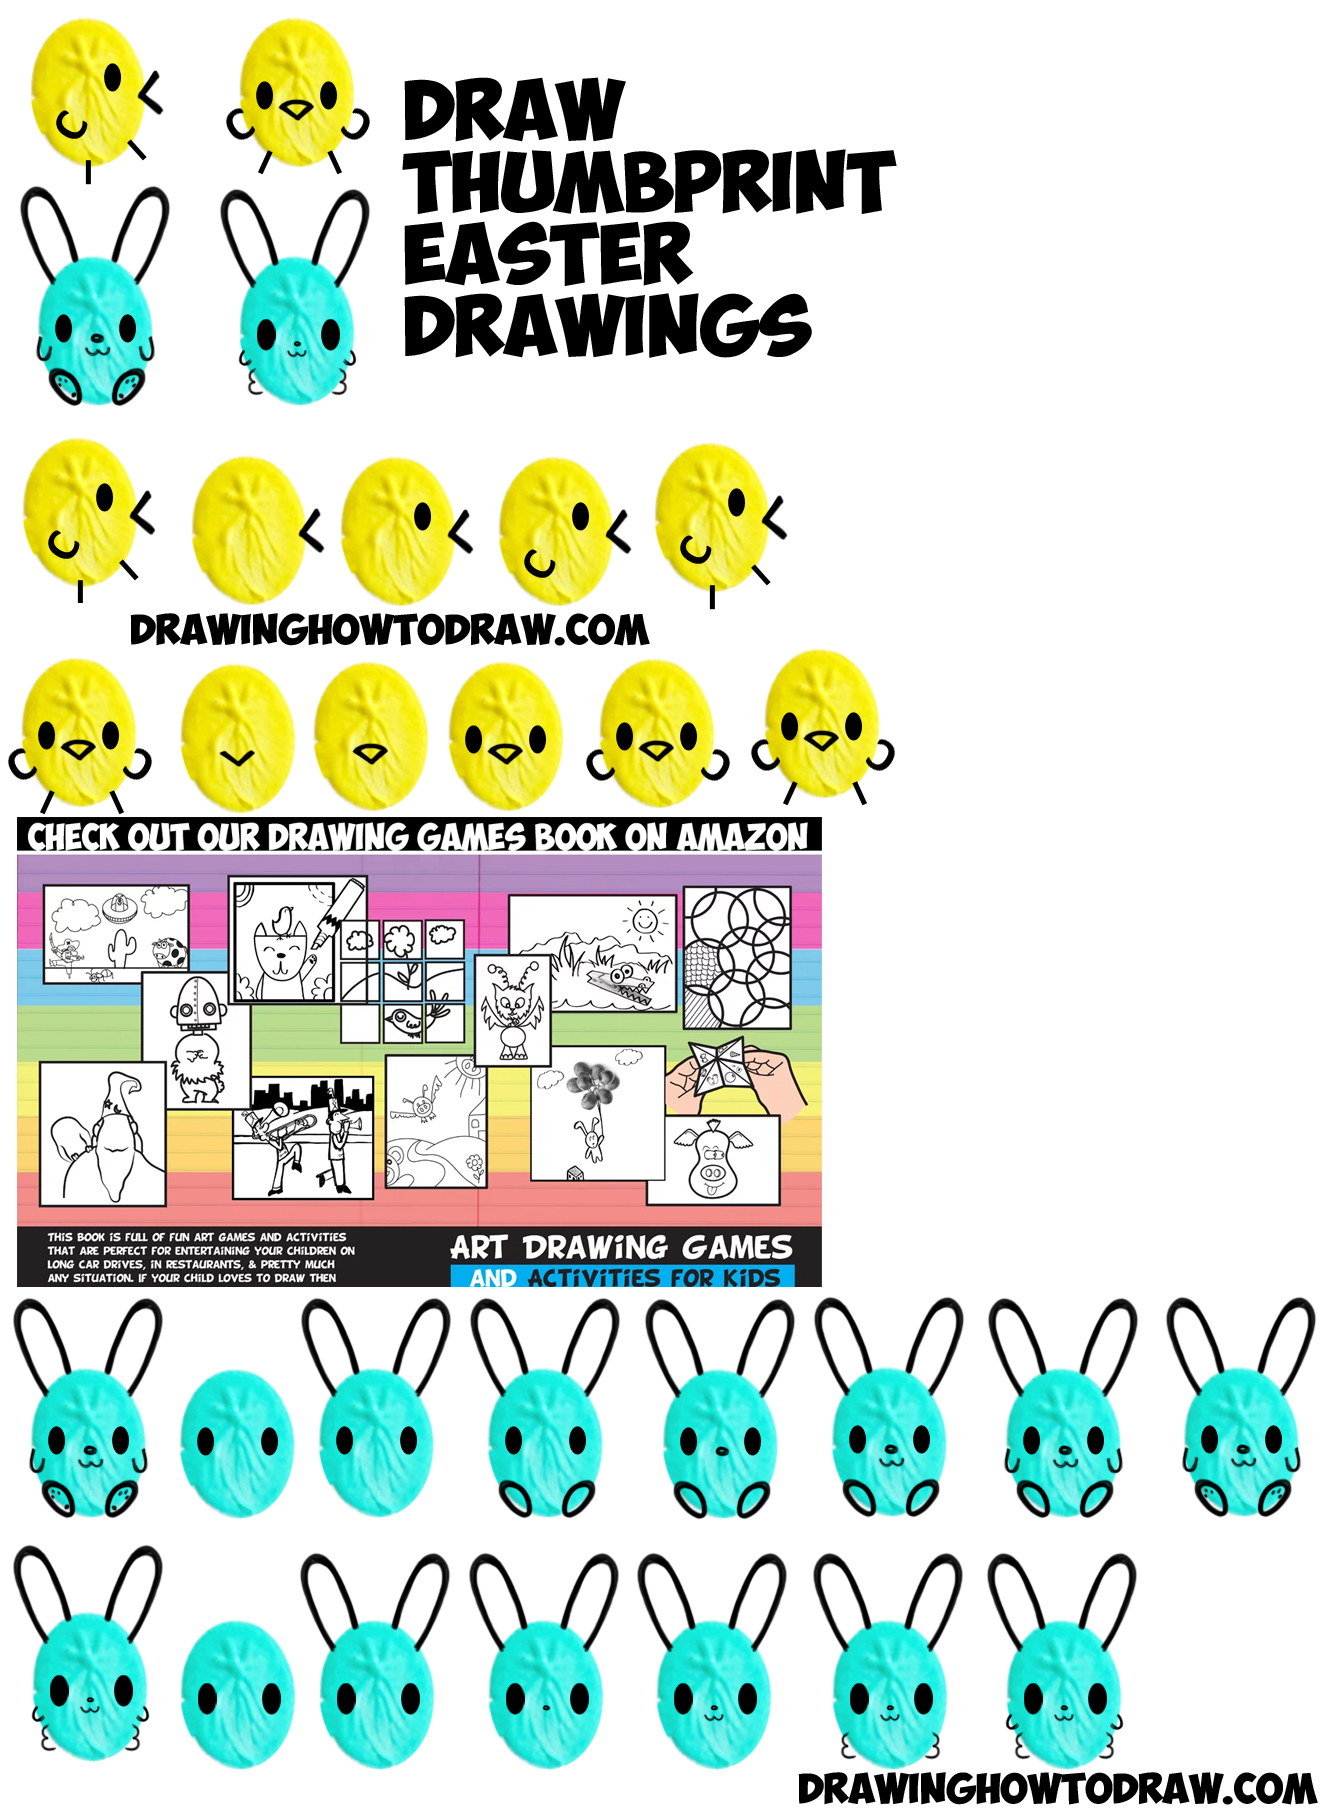 How To Draw Cute Easter Drawings From Thumbprints Fingerprints Or Ovals (bunny  Rabbits & Baby Chicks) For Easy Easy Step By Step Drawing Tutorial For Kids  &